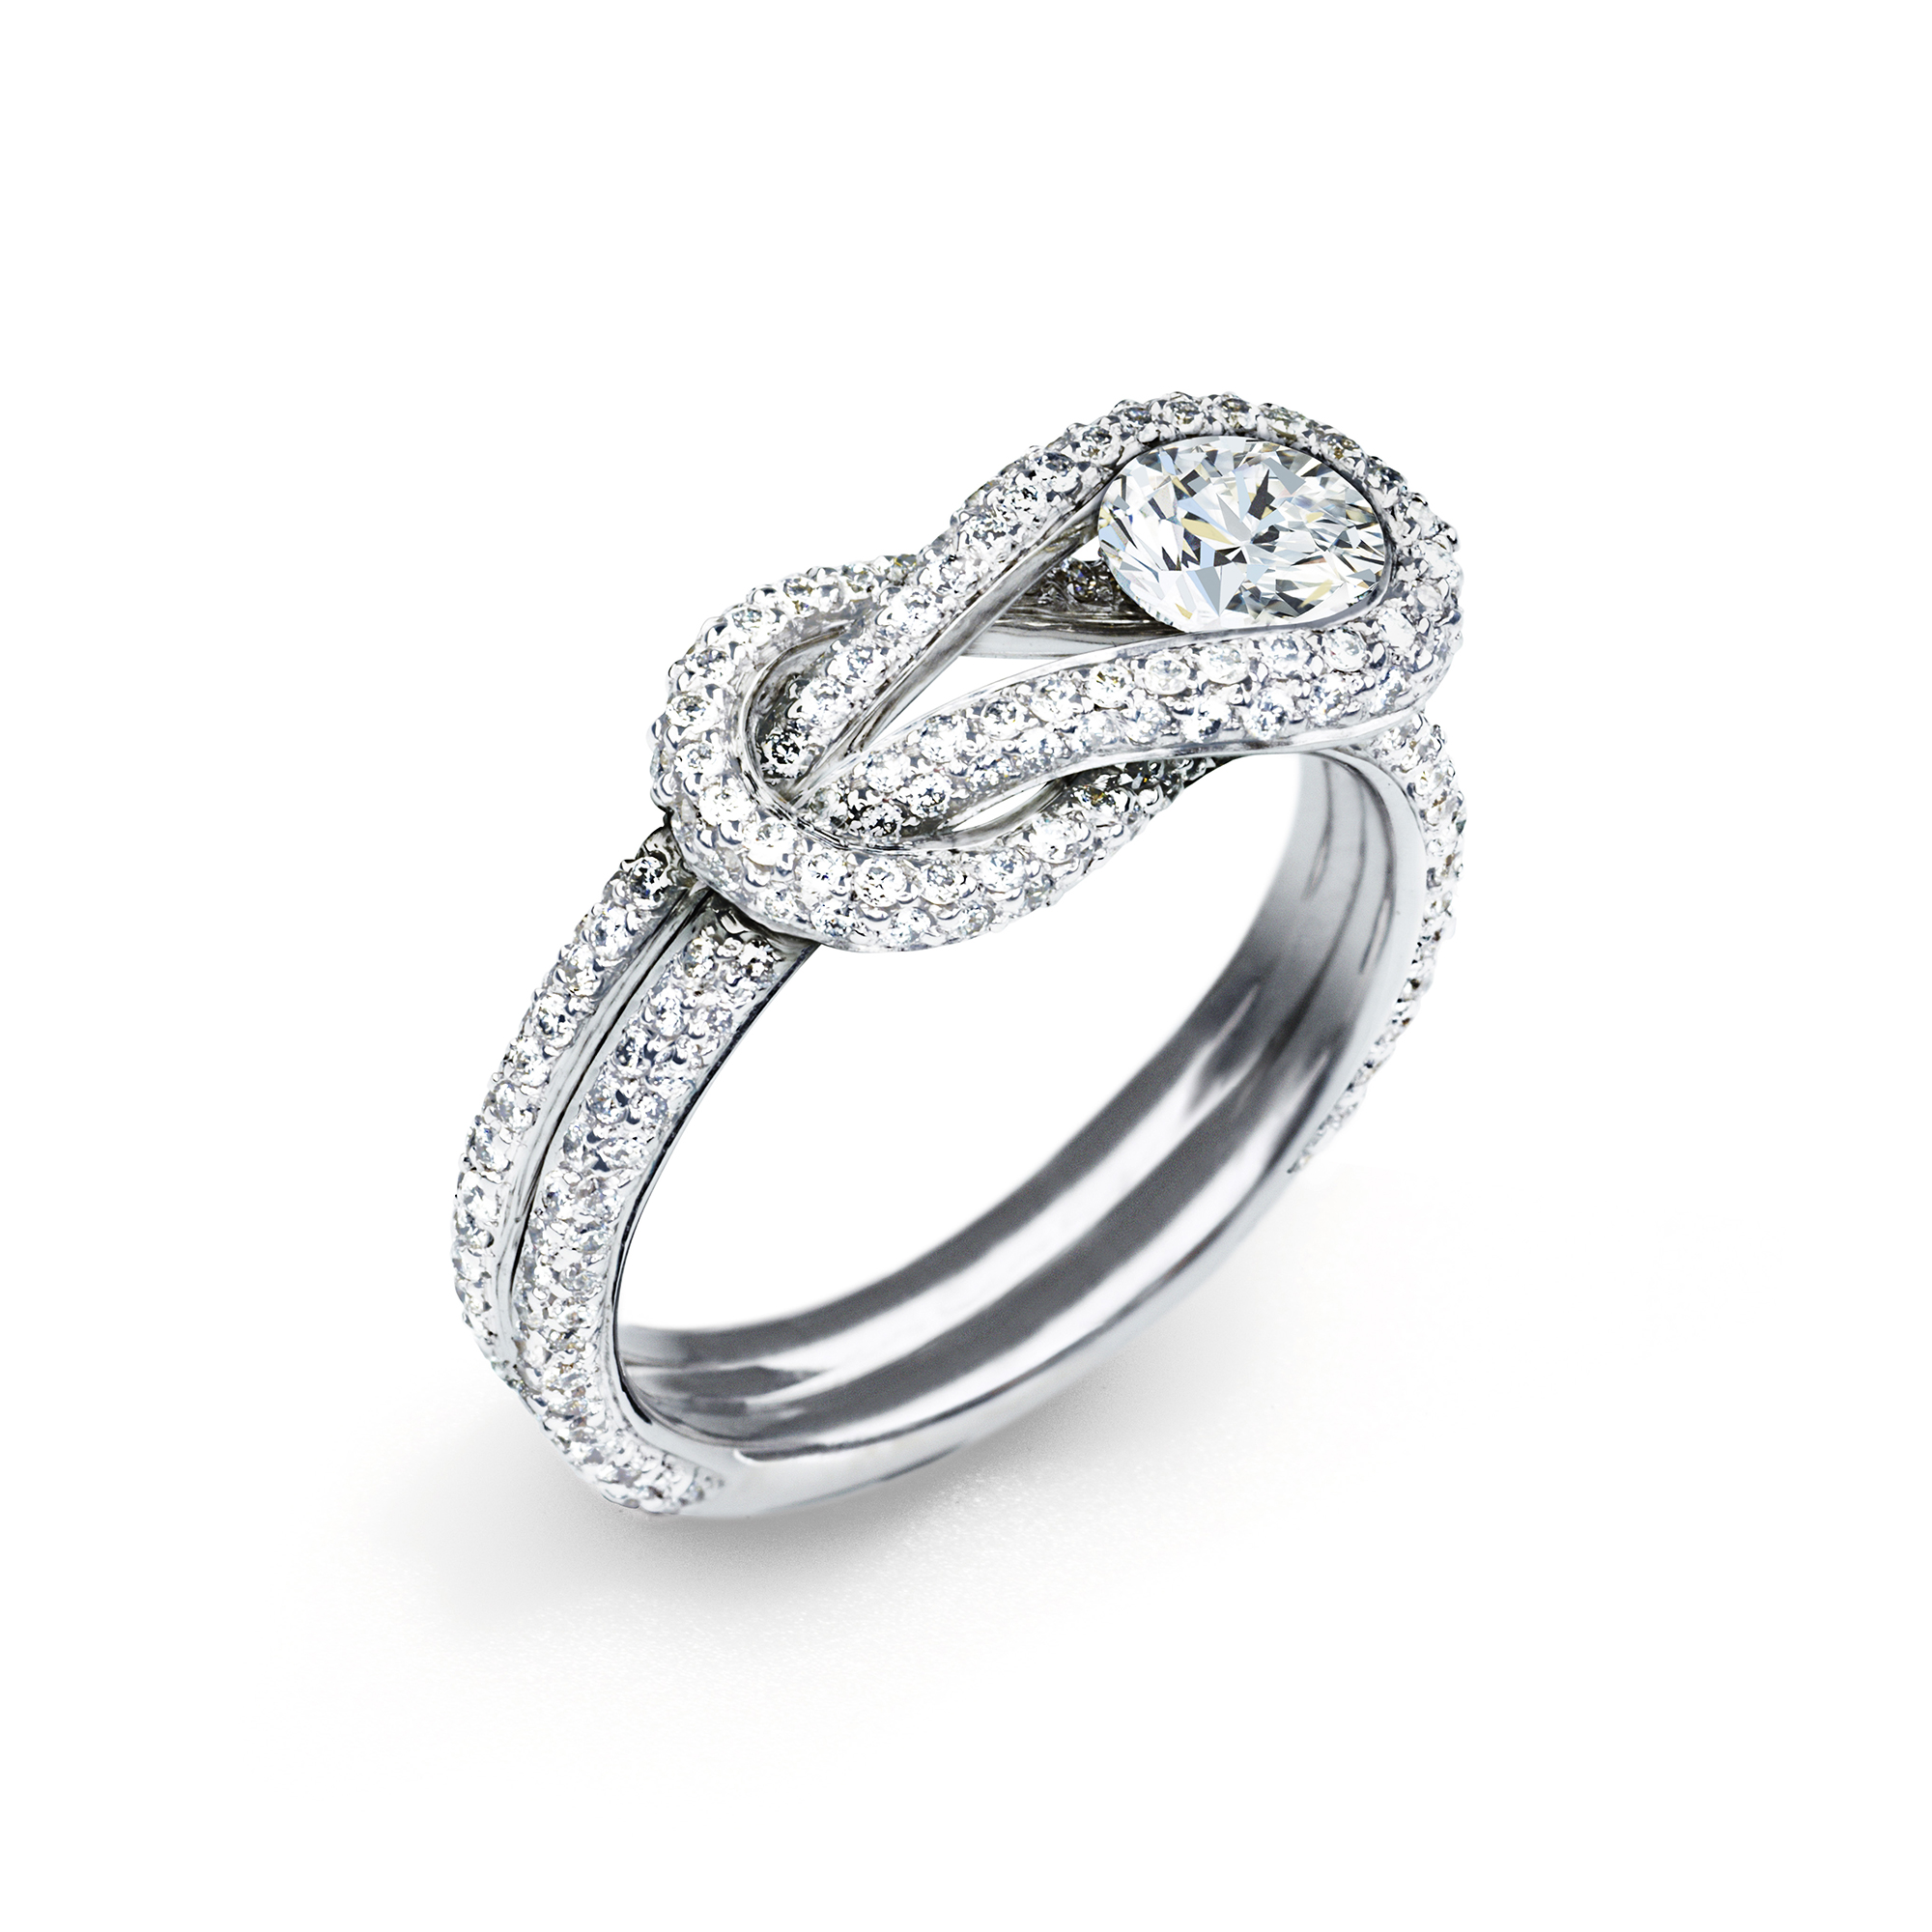 Forevermark Encordia Pave Solitaire Diamond Ring